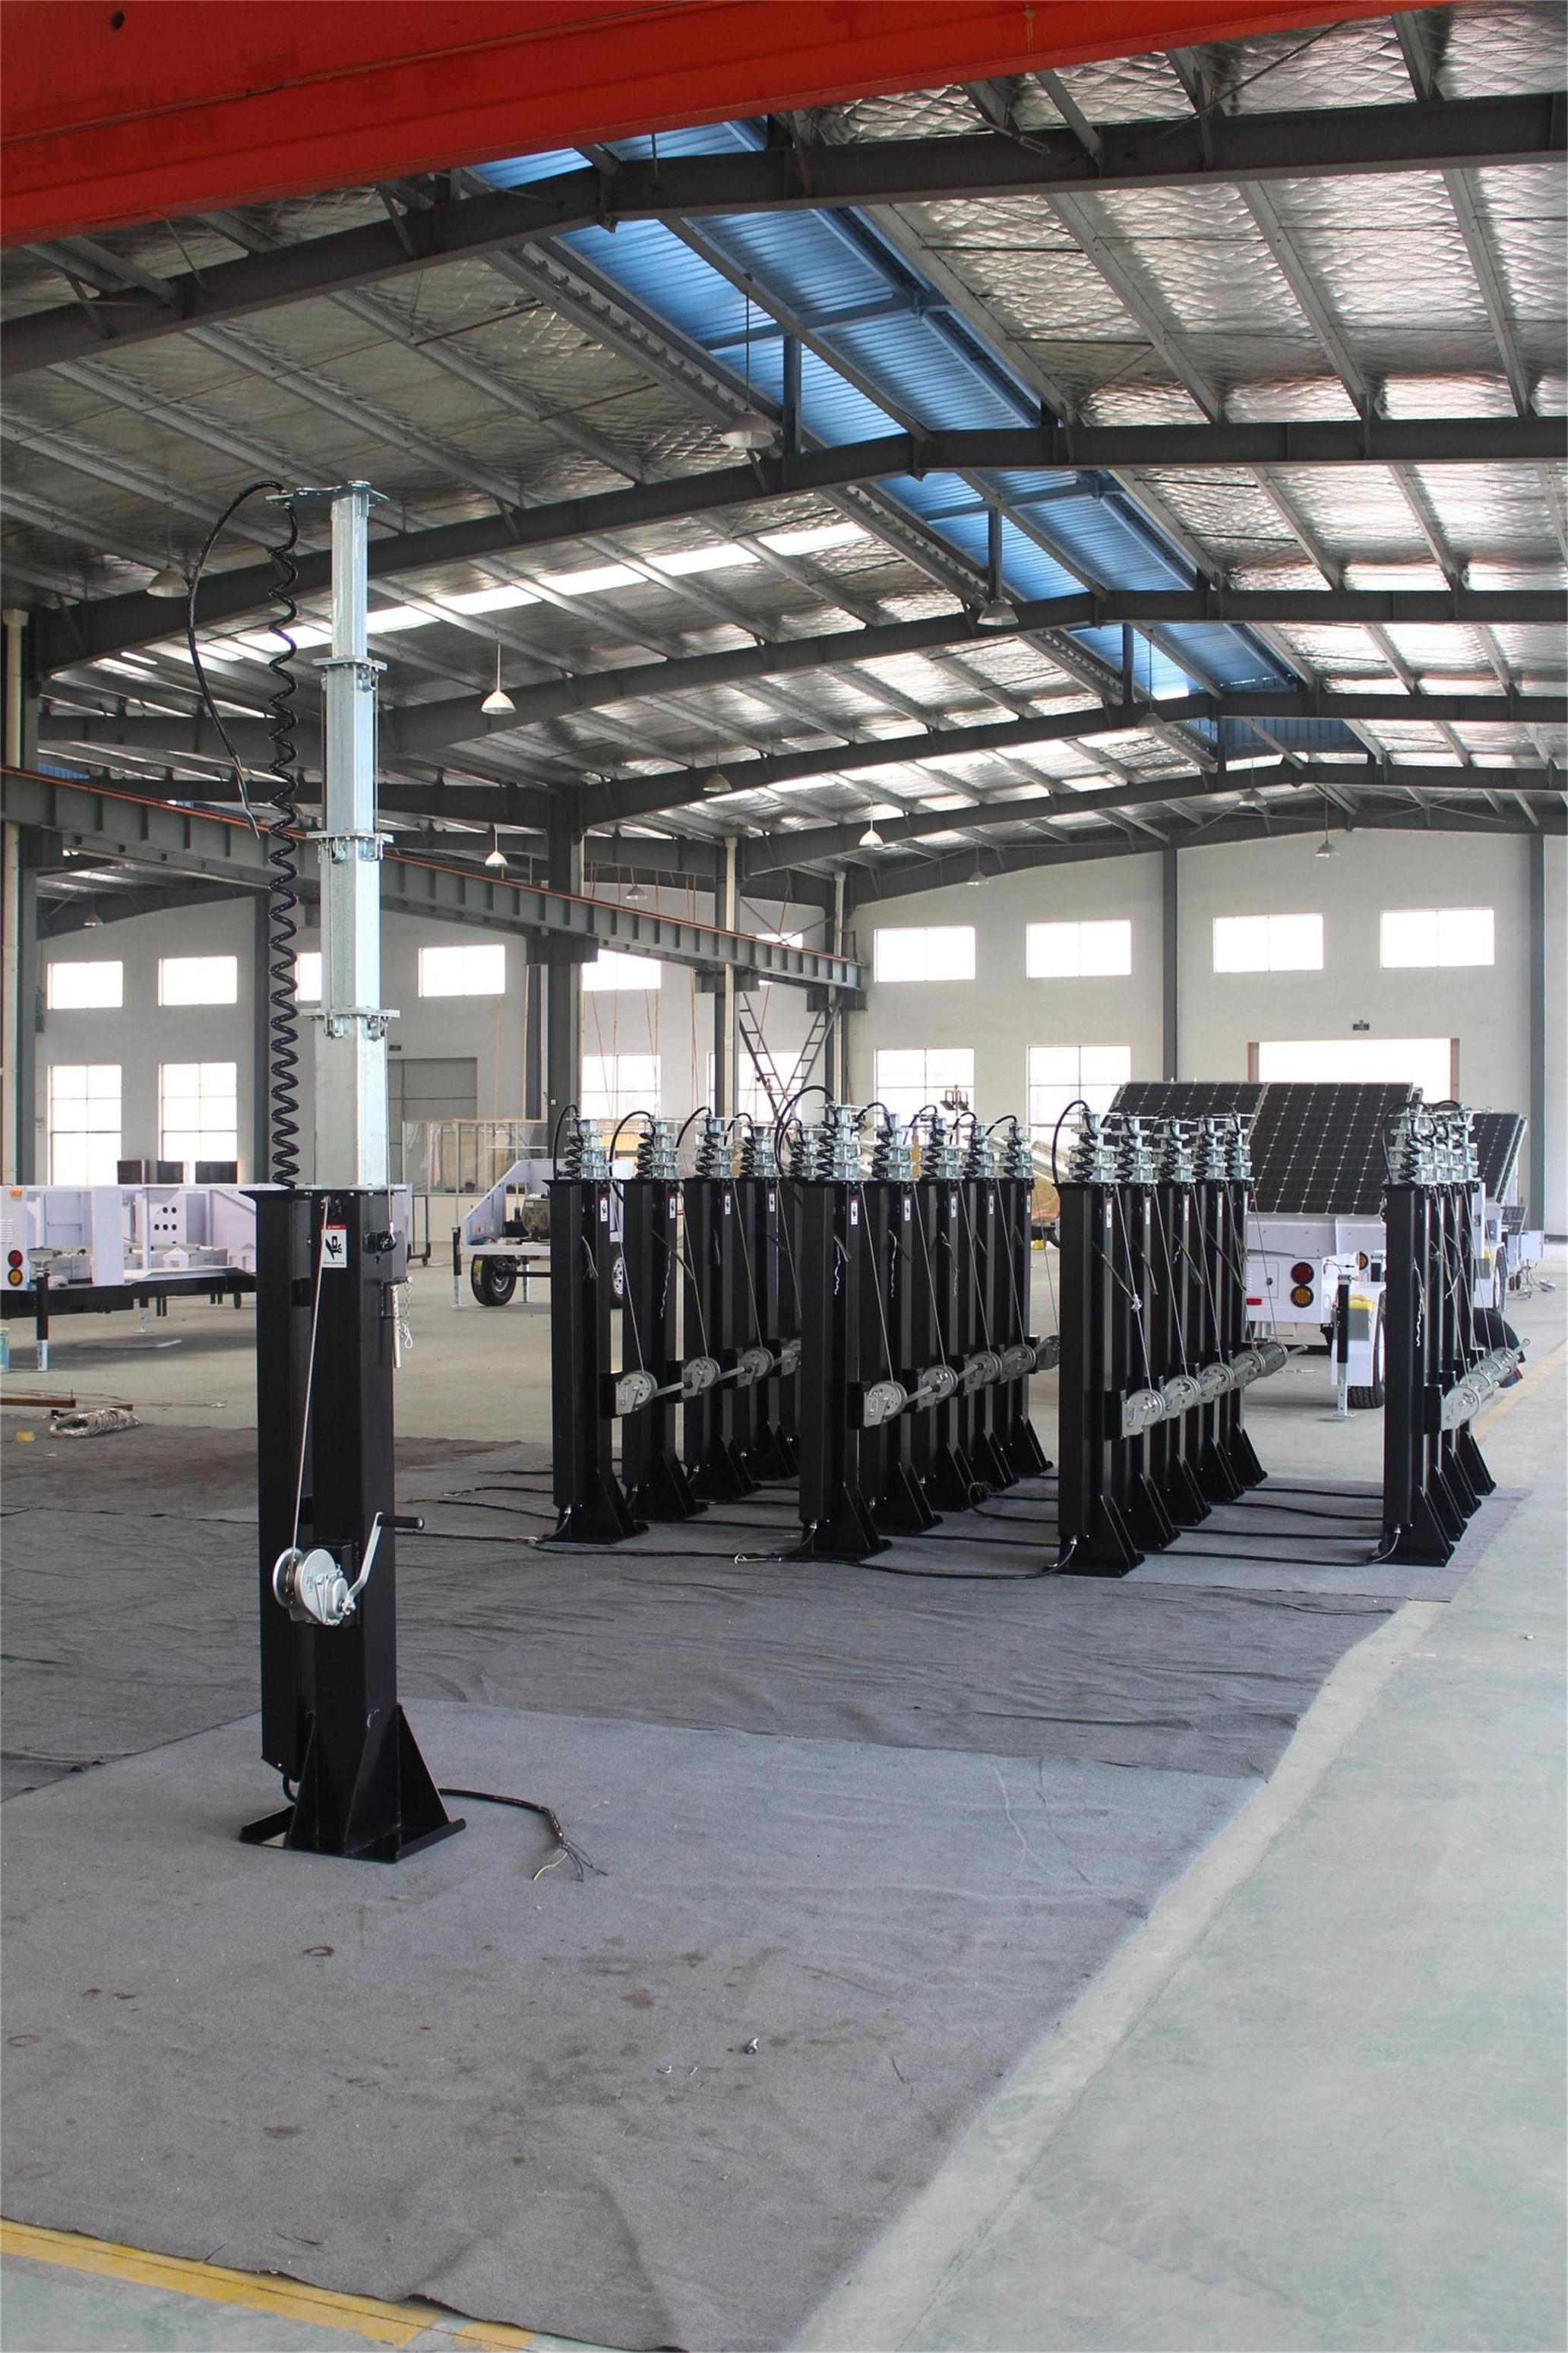 Telescopic Mast Pole, Solar Light Tower, Light Tower, Refugee Camps Solar Light Tower, mobile light towers, Job Site Solar Light Tower, Portable Solar Light Towers, Solar Powered Construction Light Tower.